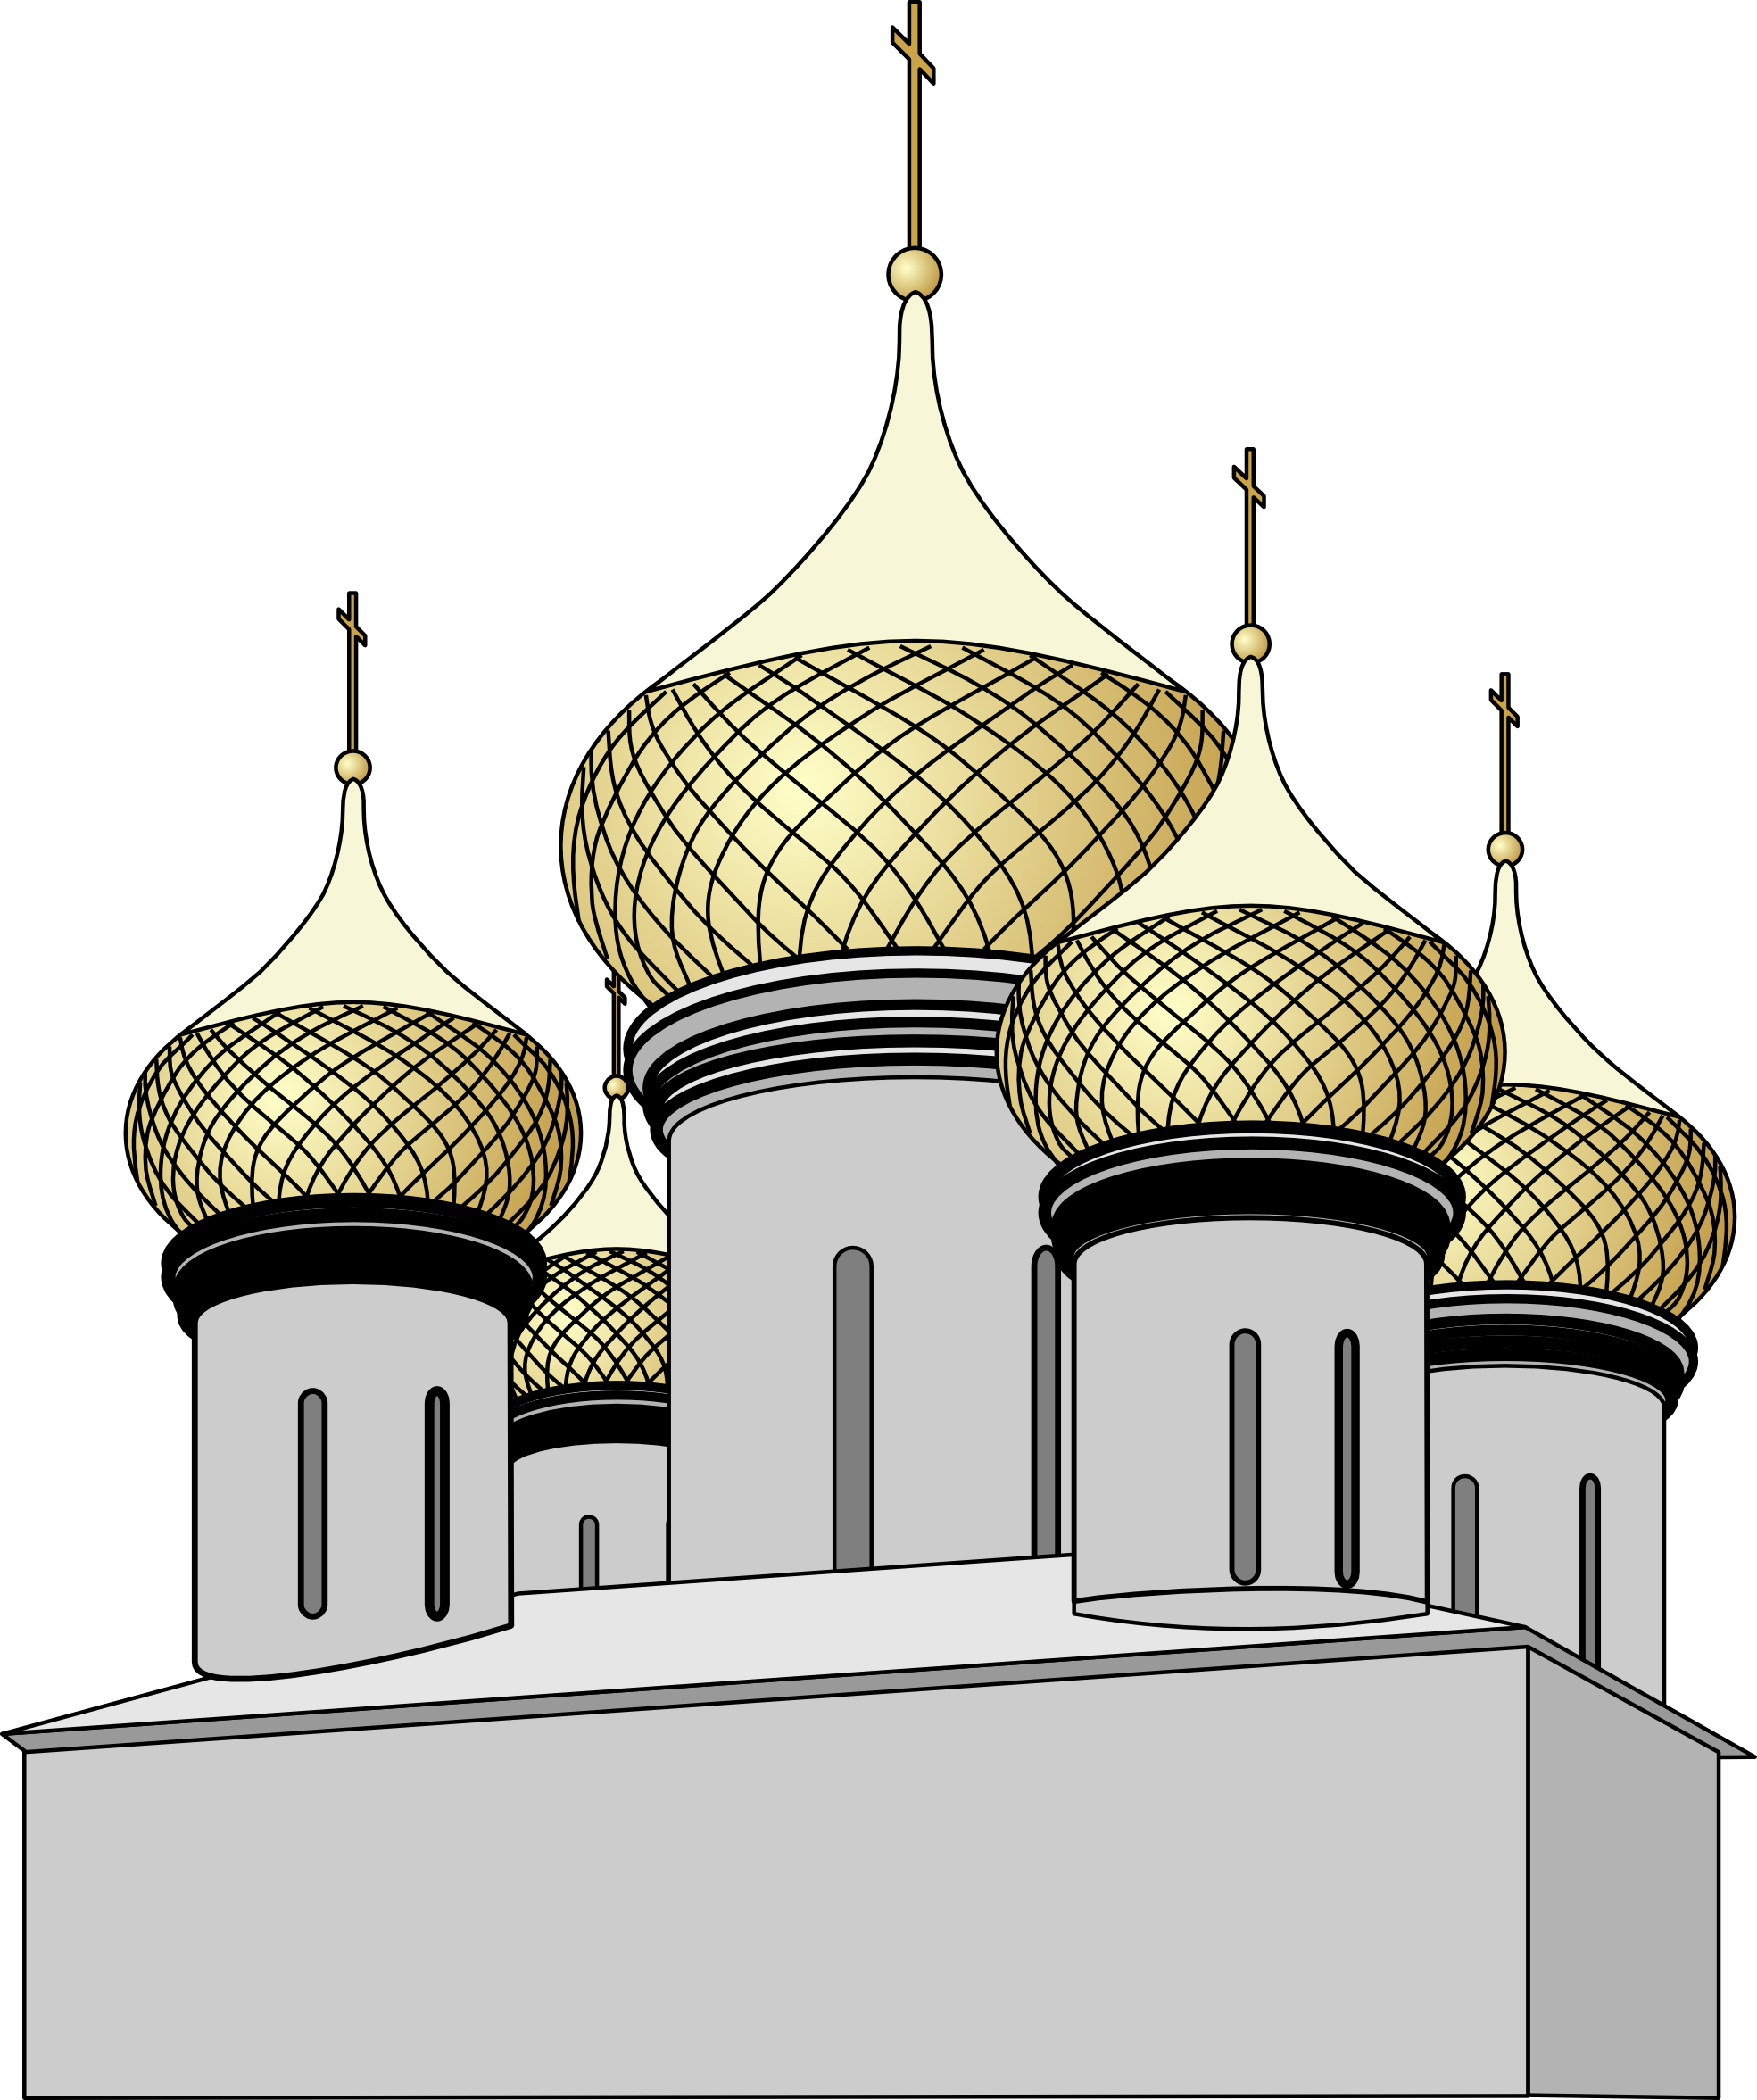 Islamic mosque clipart png free stock Free Mosque Cliparts, Download Free Clip Art, Free Clip Art on ... png free stock